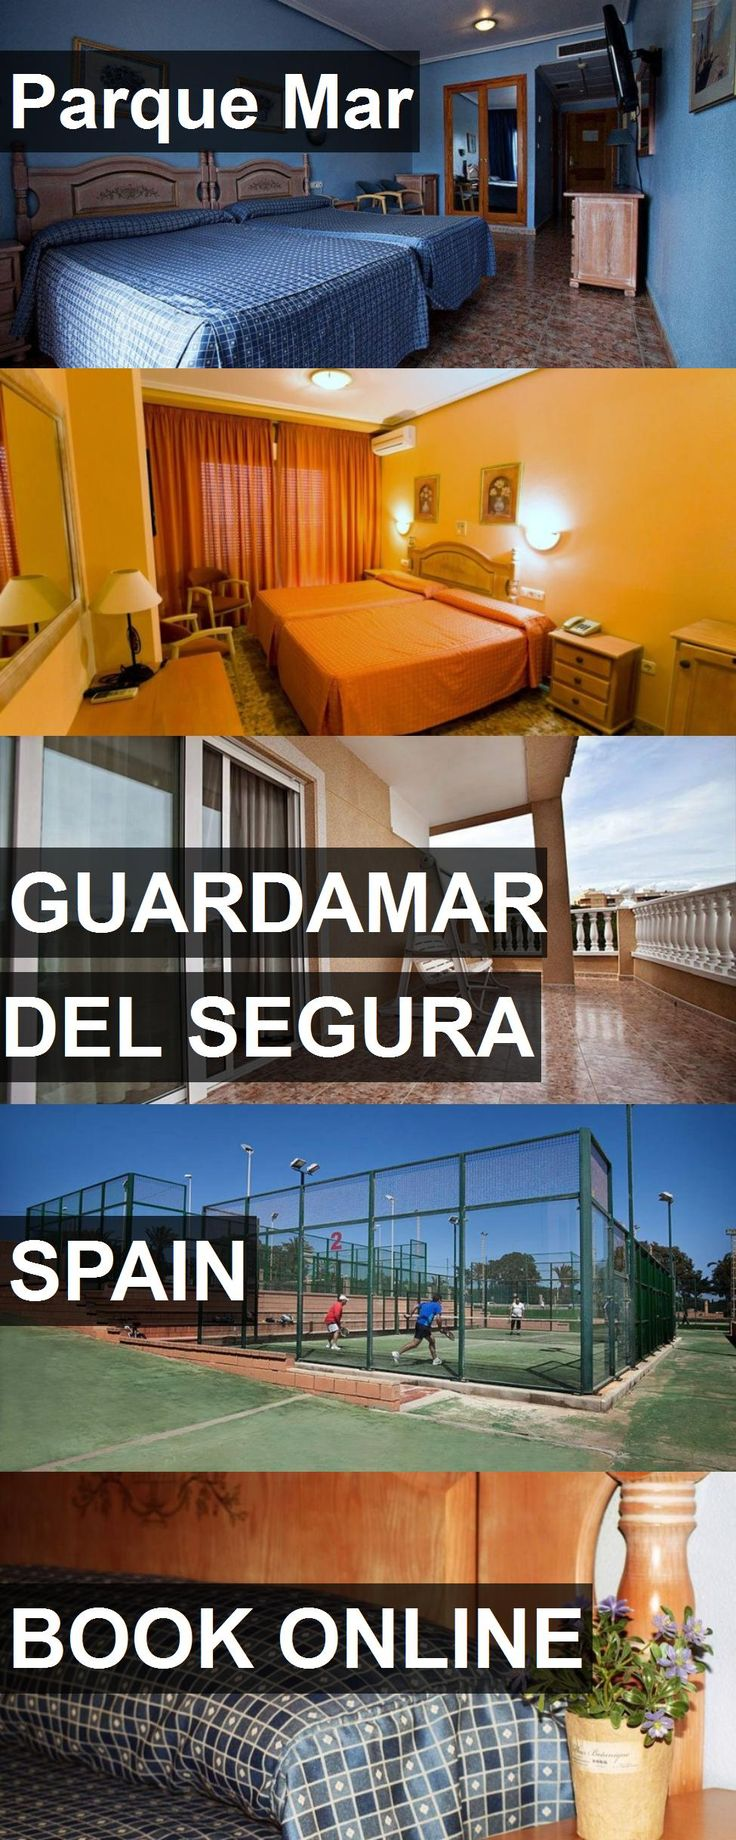 Hotel Parque Mar in Guardamar del Segura, Spain. For more information, photos, reviews and best prices please follow the link. #Spain #GuardamardelSegura #ParqueMar #hotel #travel #vacation